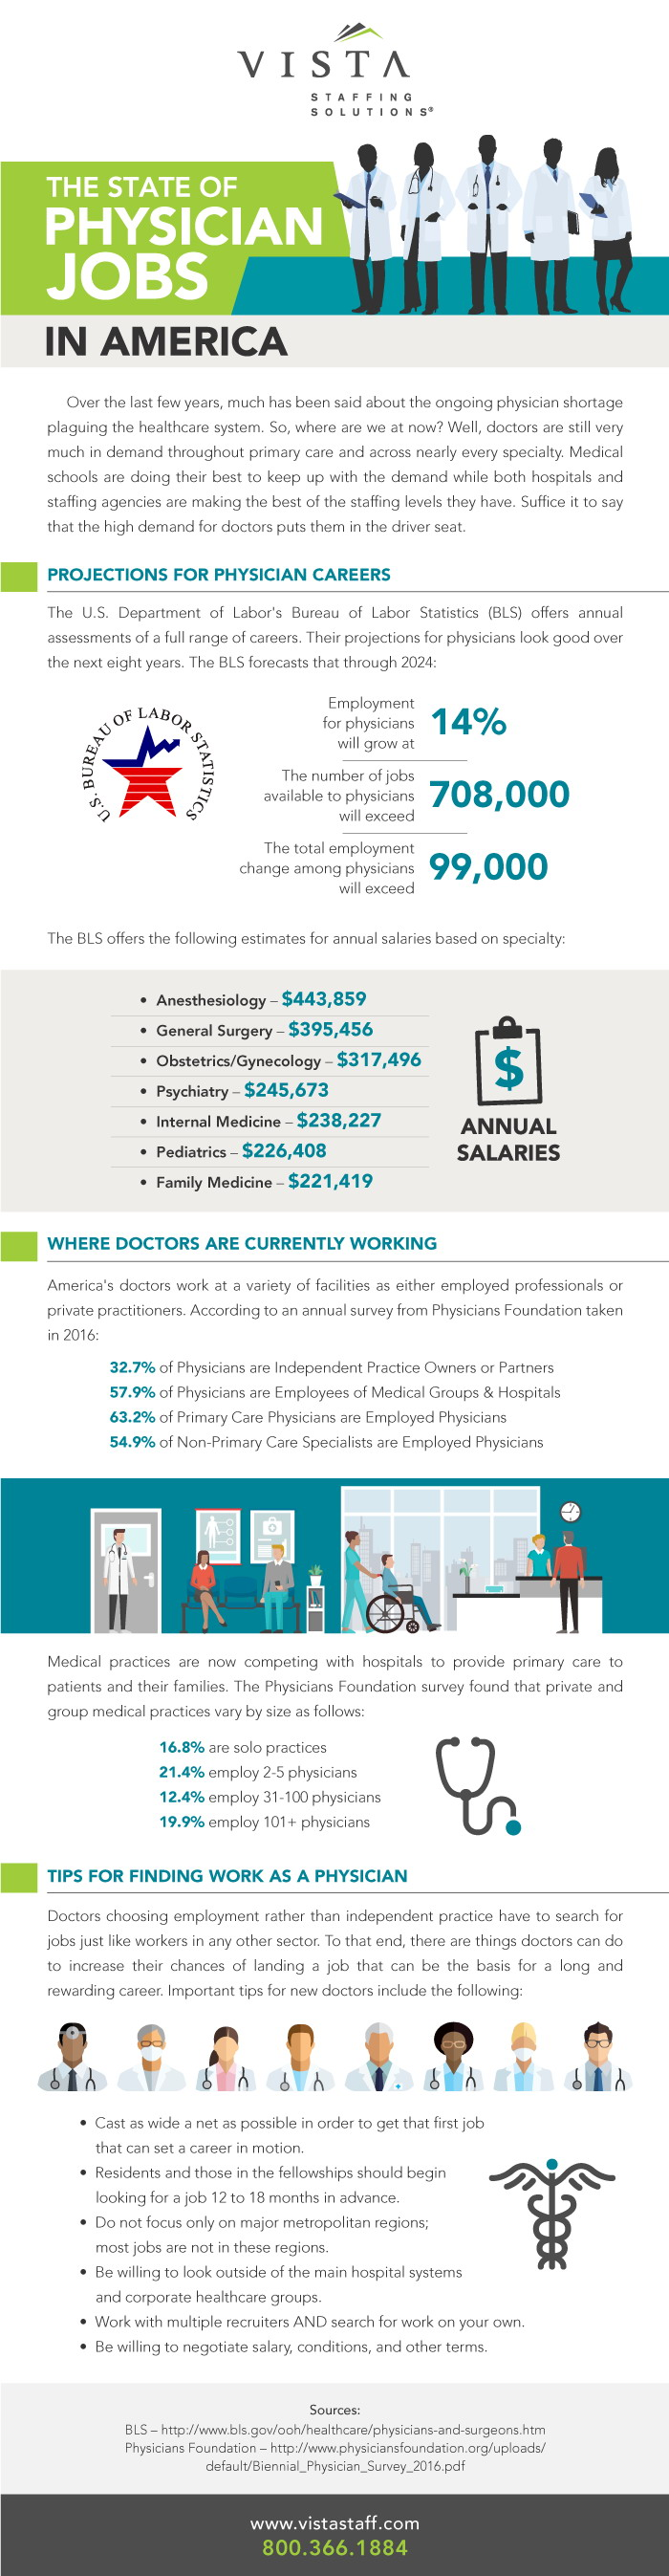 Physician-Jobs-Infographic.jpg